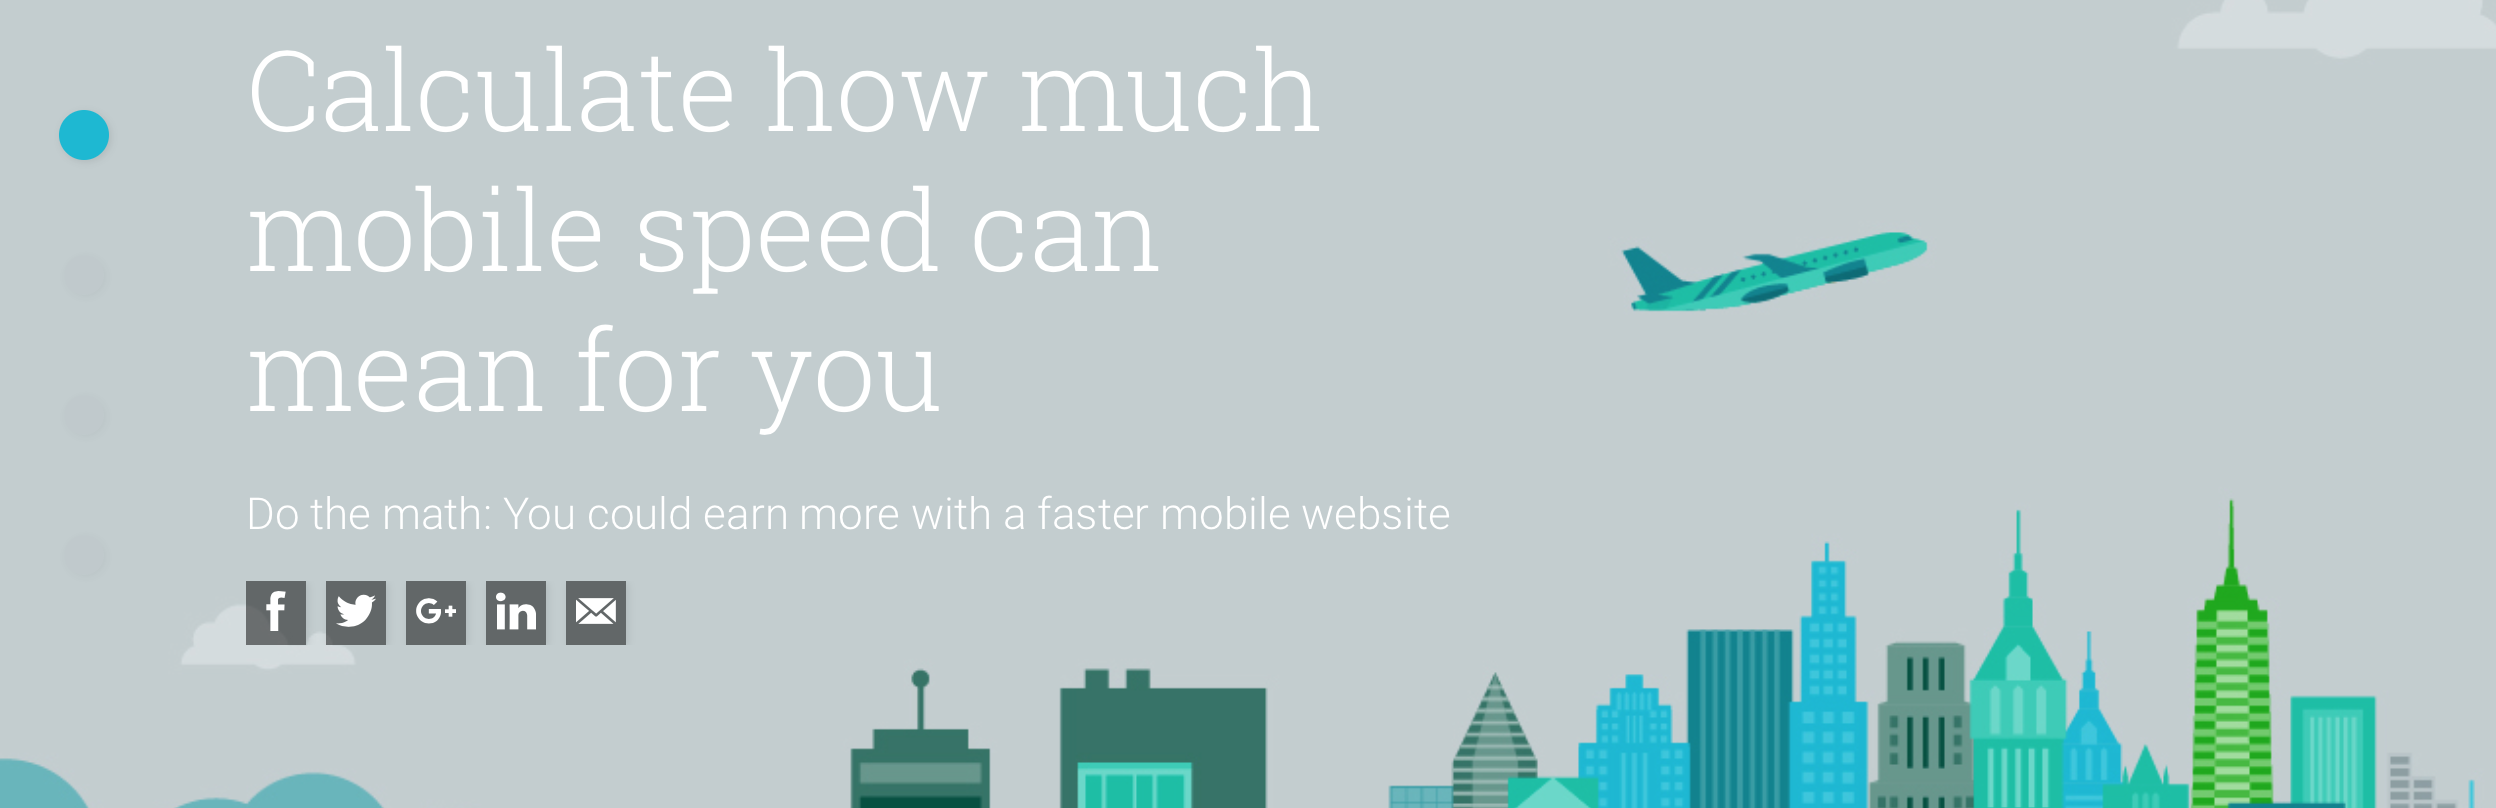 Calculate How Much Mobile Speed Can Mean For You